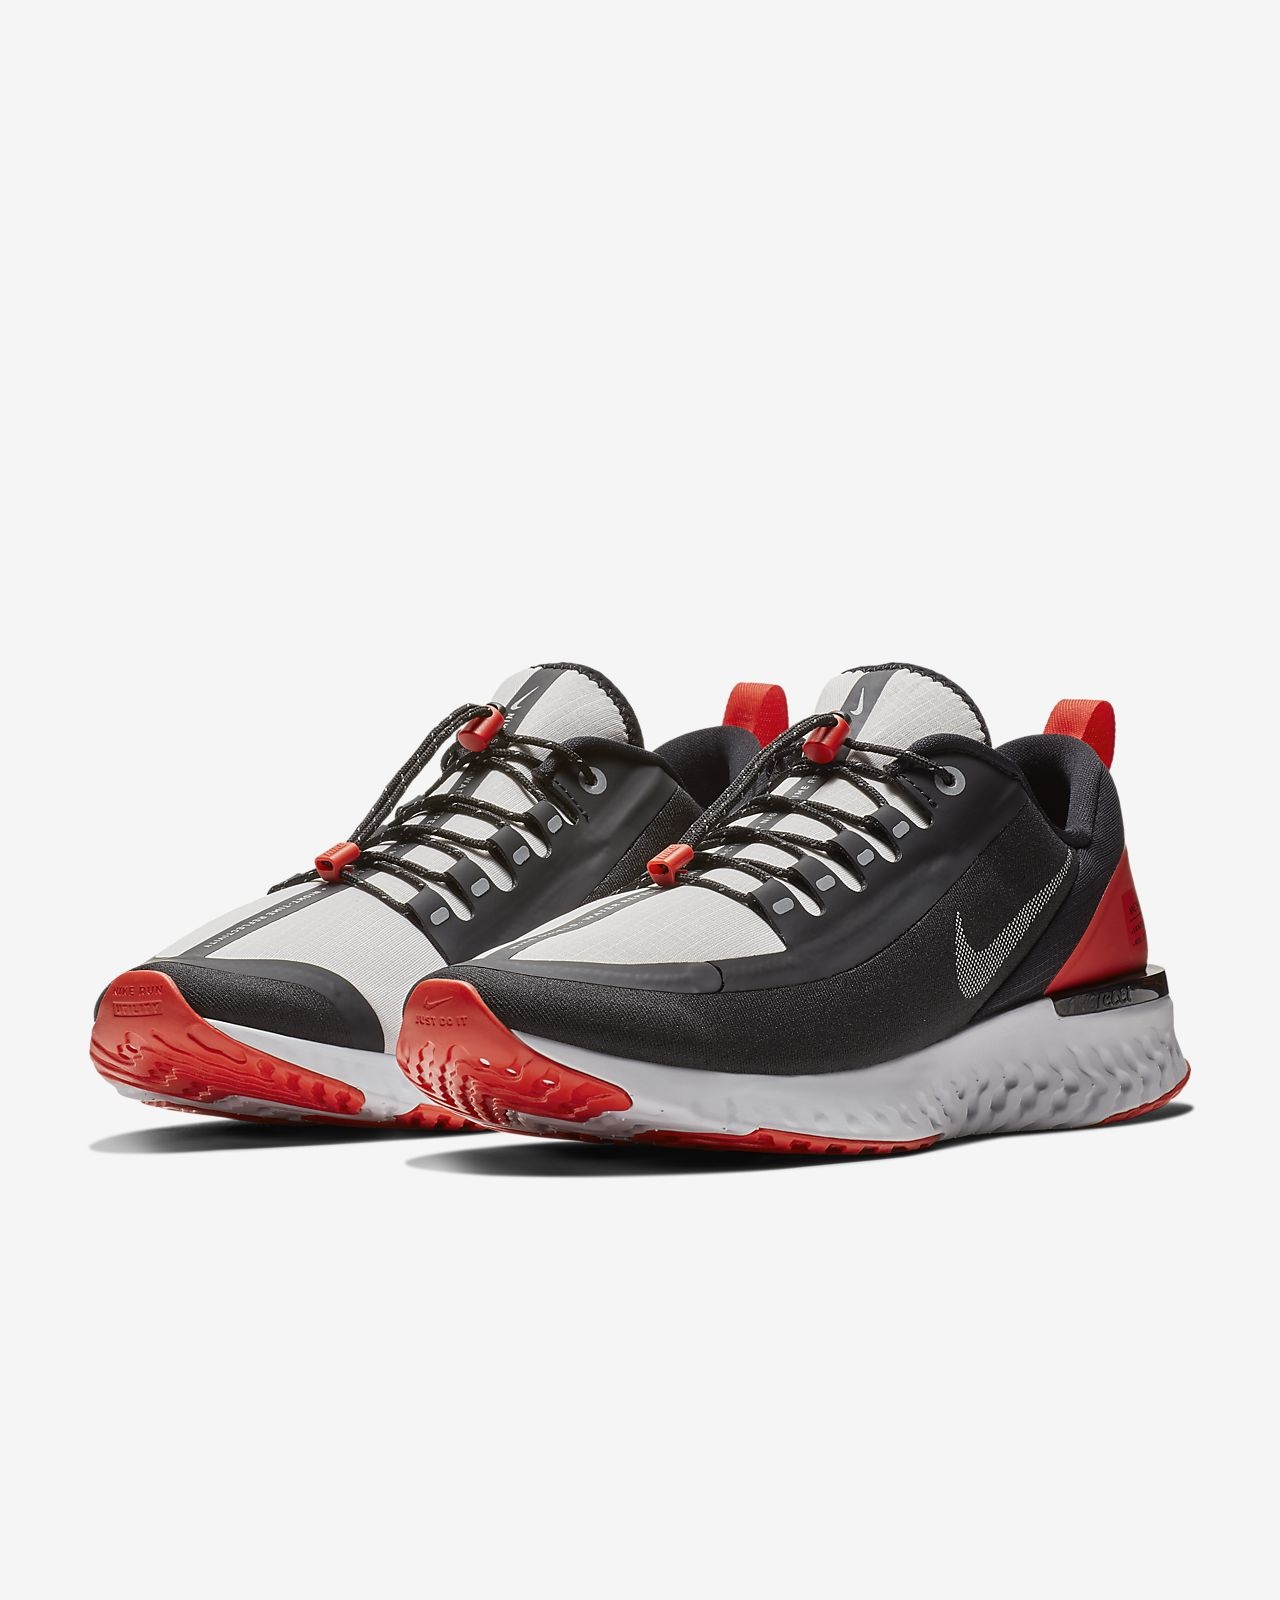 2e67c11c52b64 Nike Odyssey React Shield Water-Repellent Men s Running Shoe. Nike ...